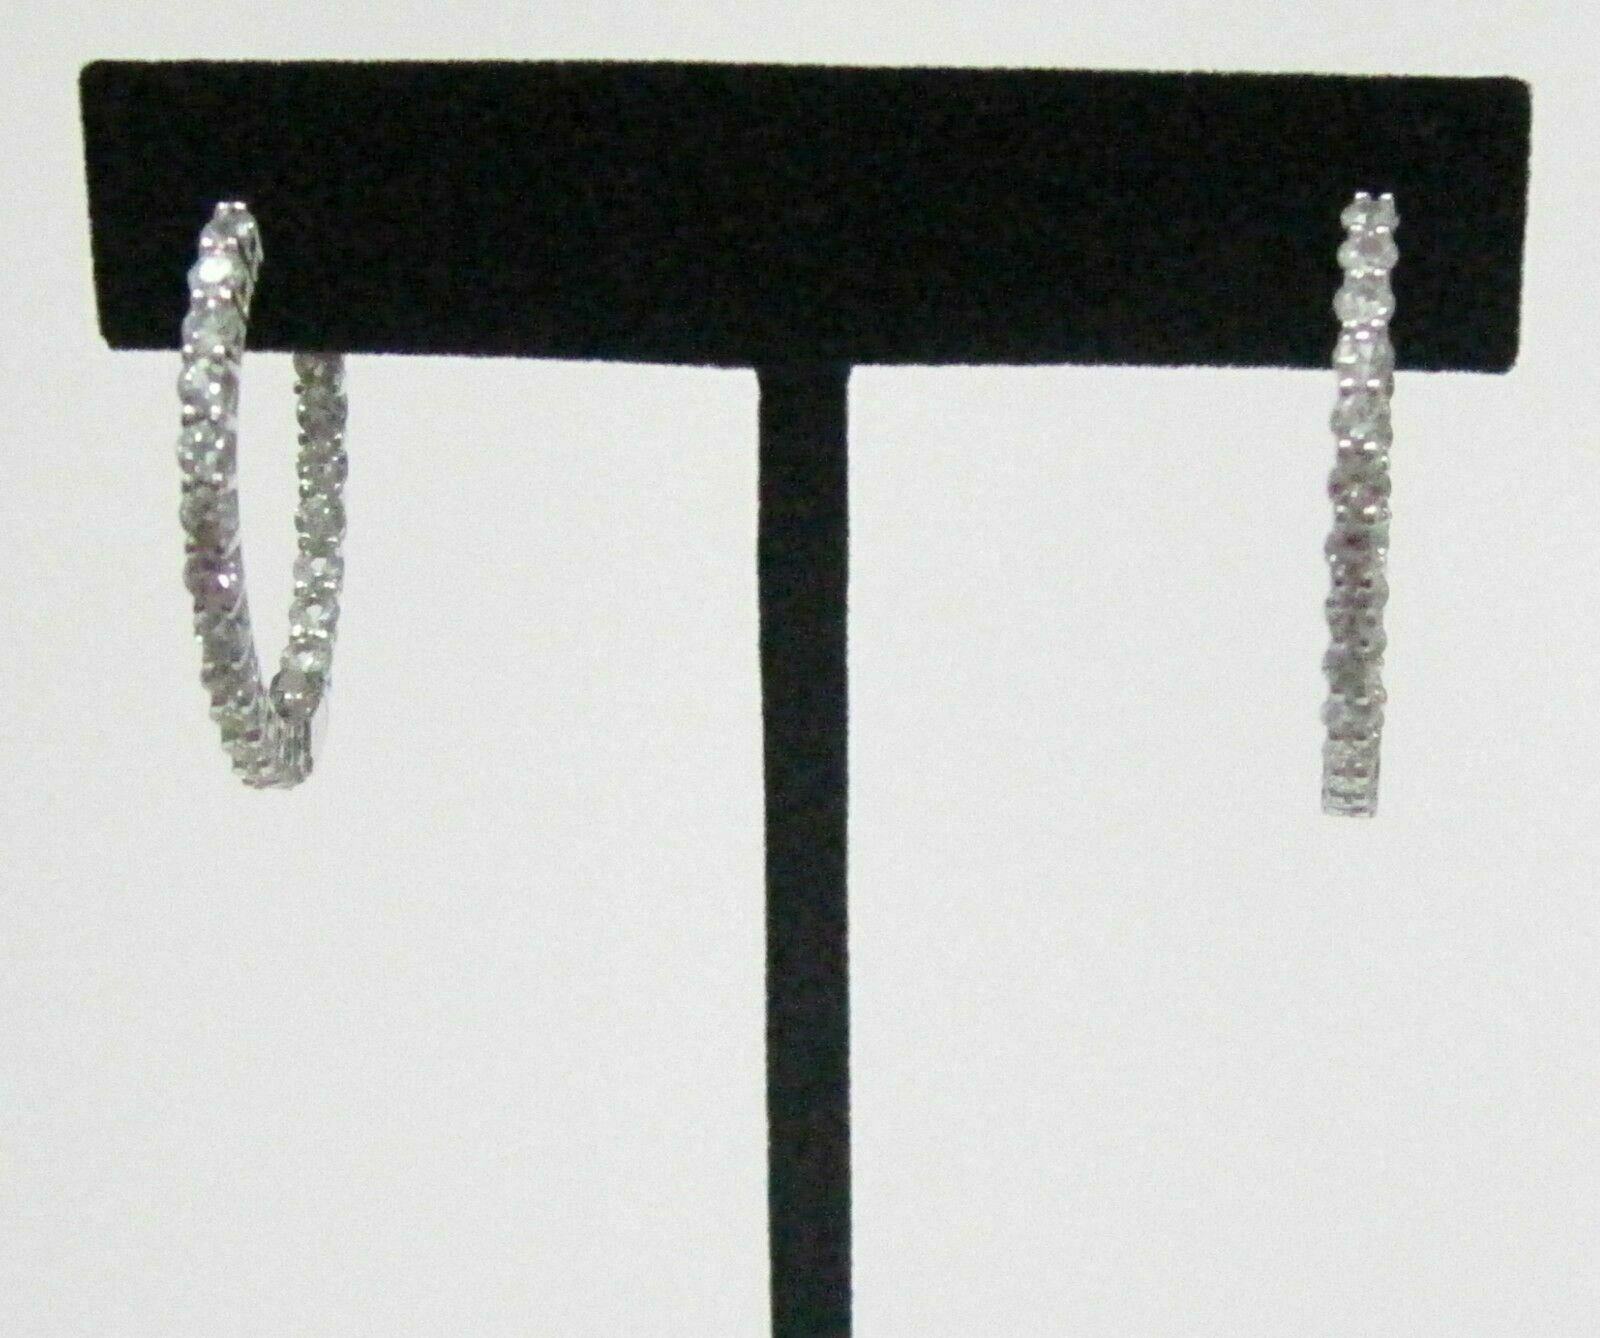 29mm 3.91 TCW Round Hoops In & Out White Sapphire Earrings 14kt White Gold